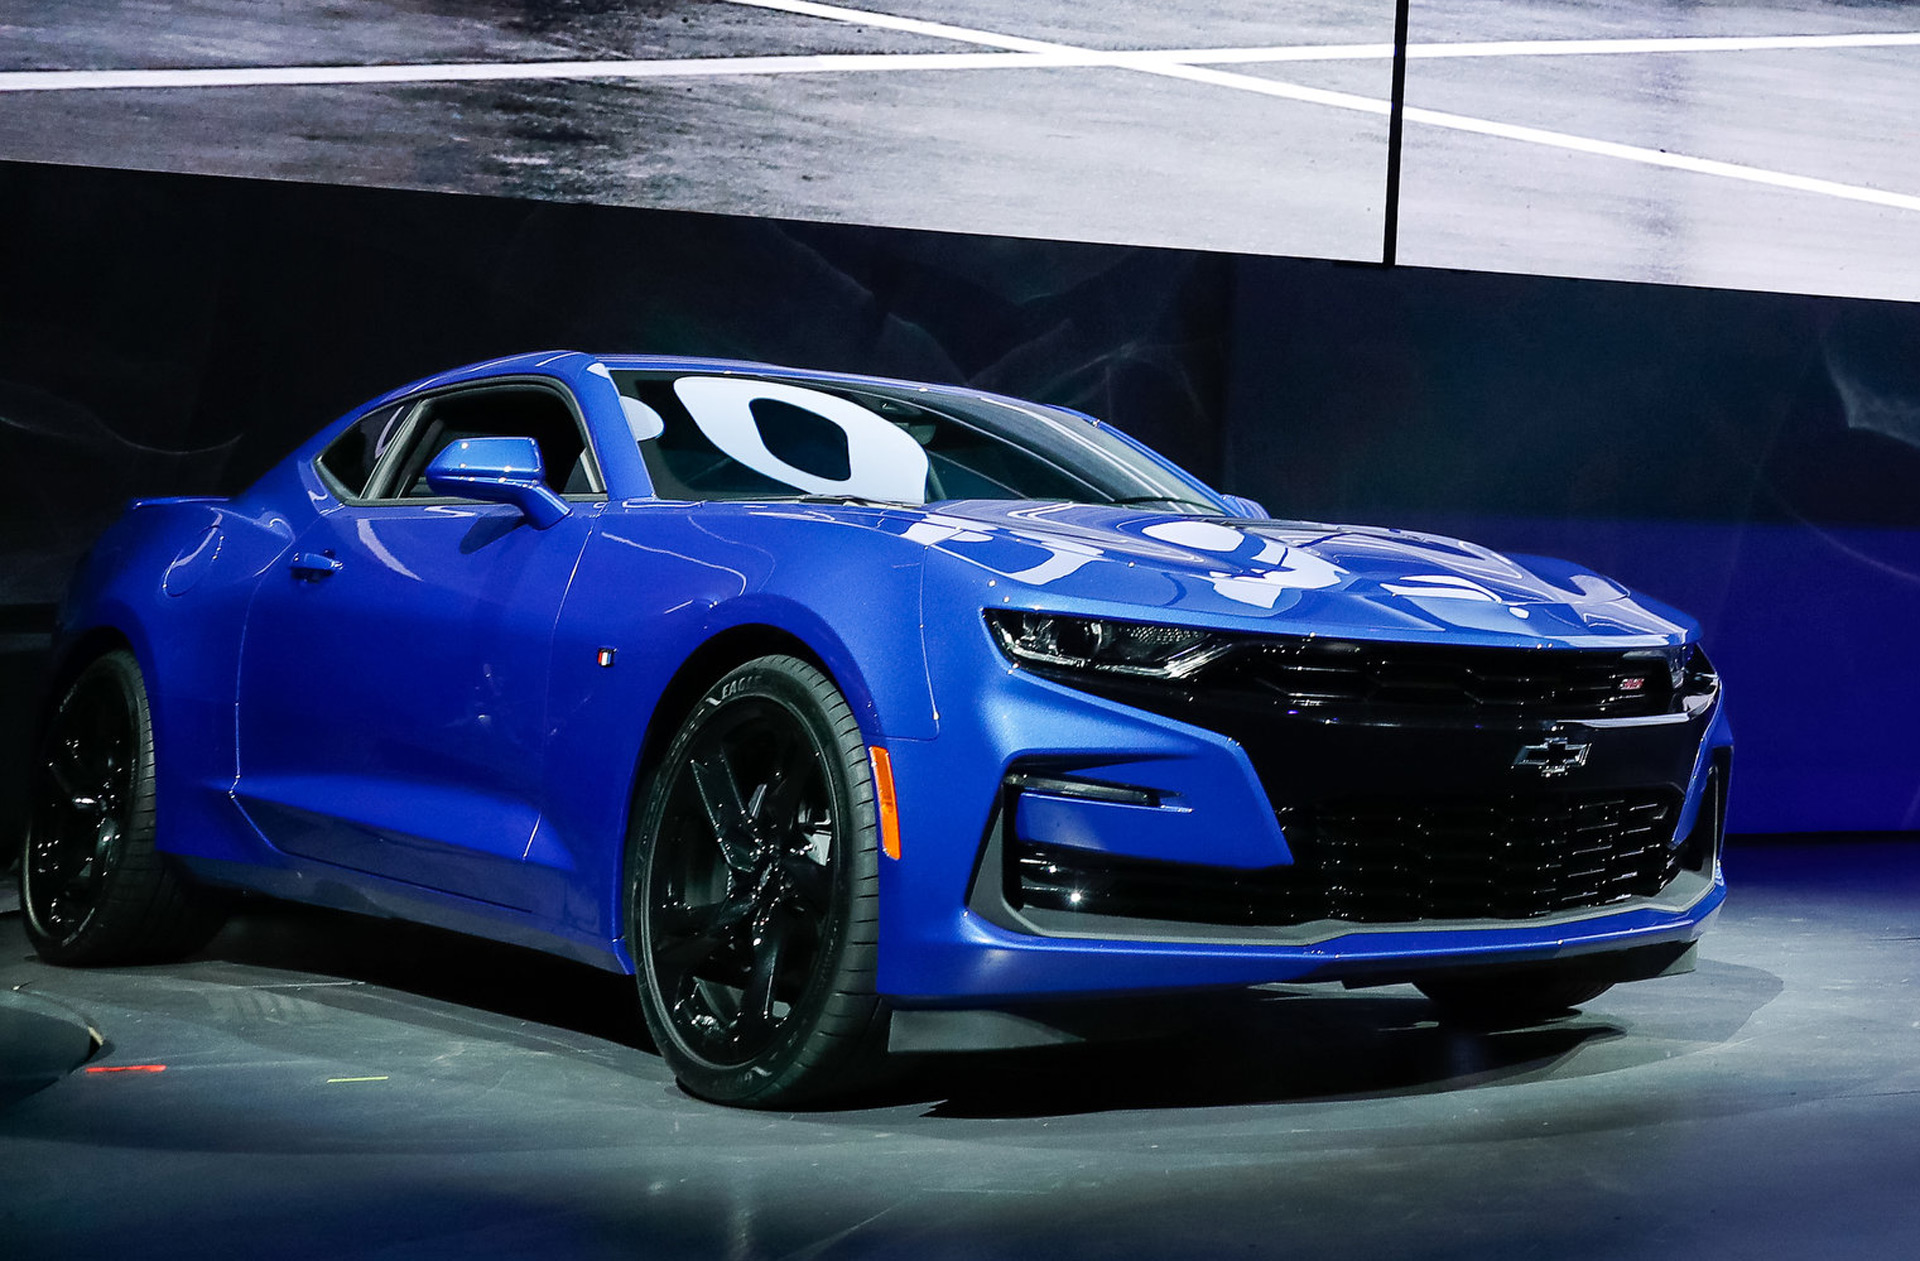 The New 2019 Chevrolet Camaro